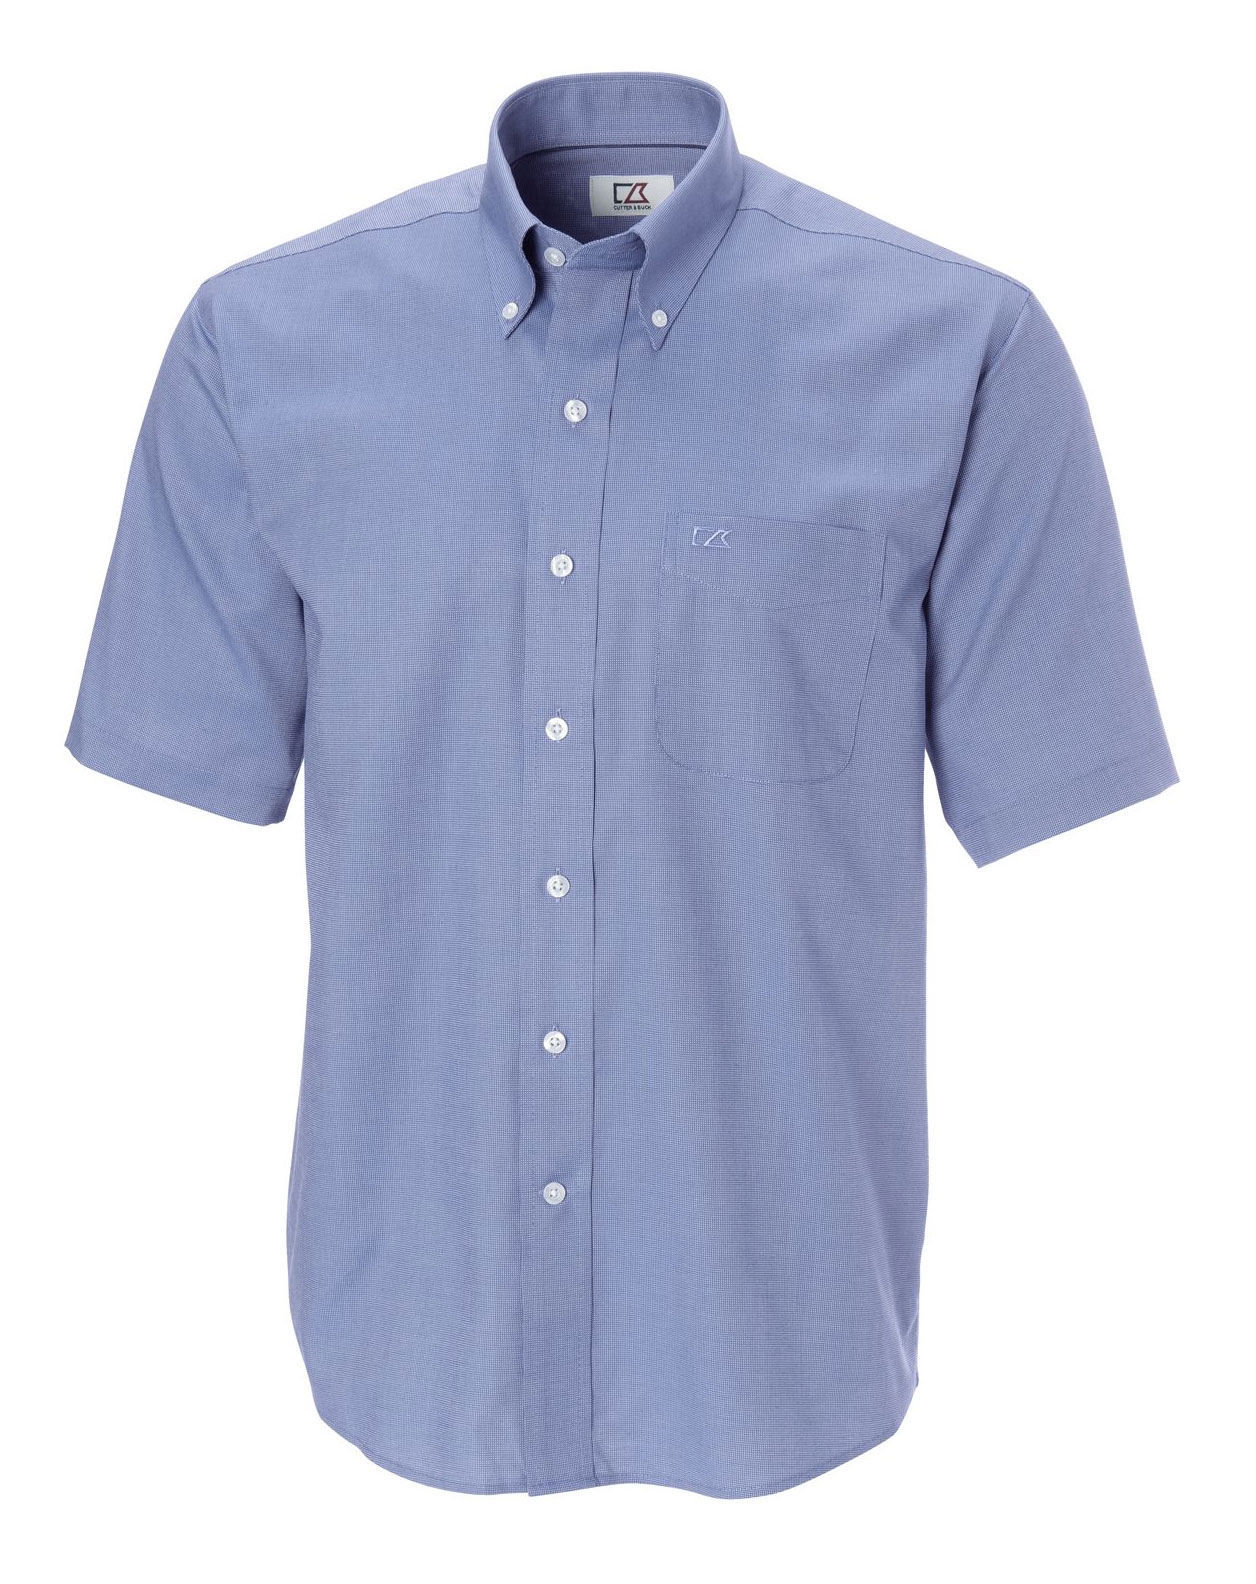 Cutter & Buck Mens Big and Tall Epic Easy Care Short Sleeve Nailshead Shirt